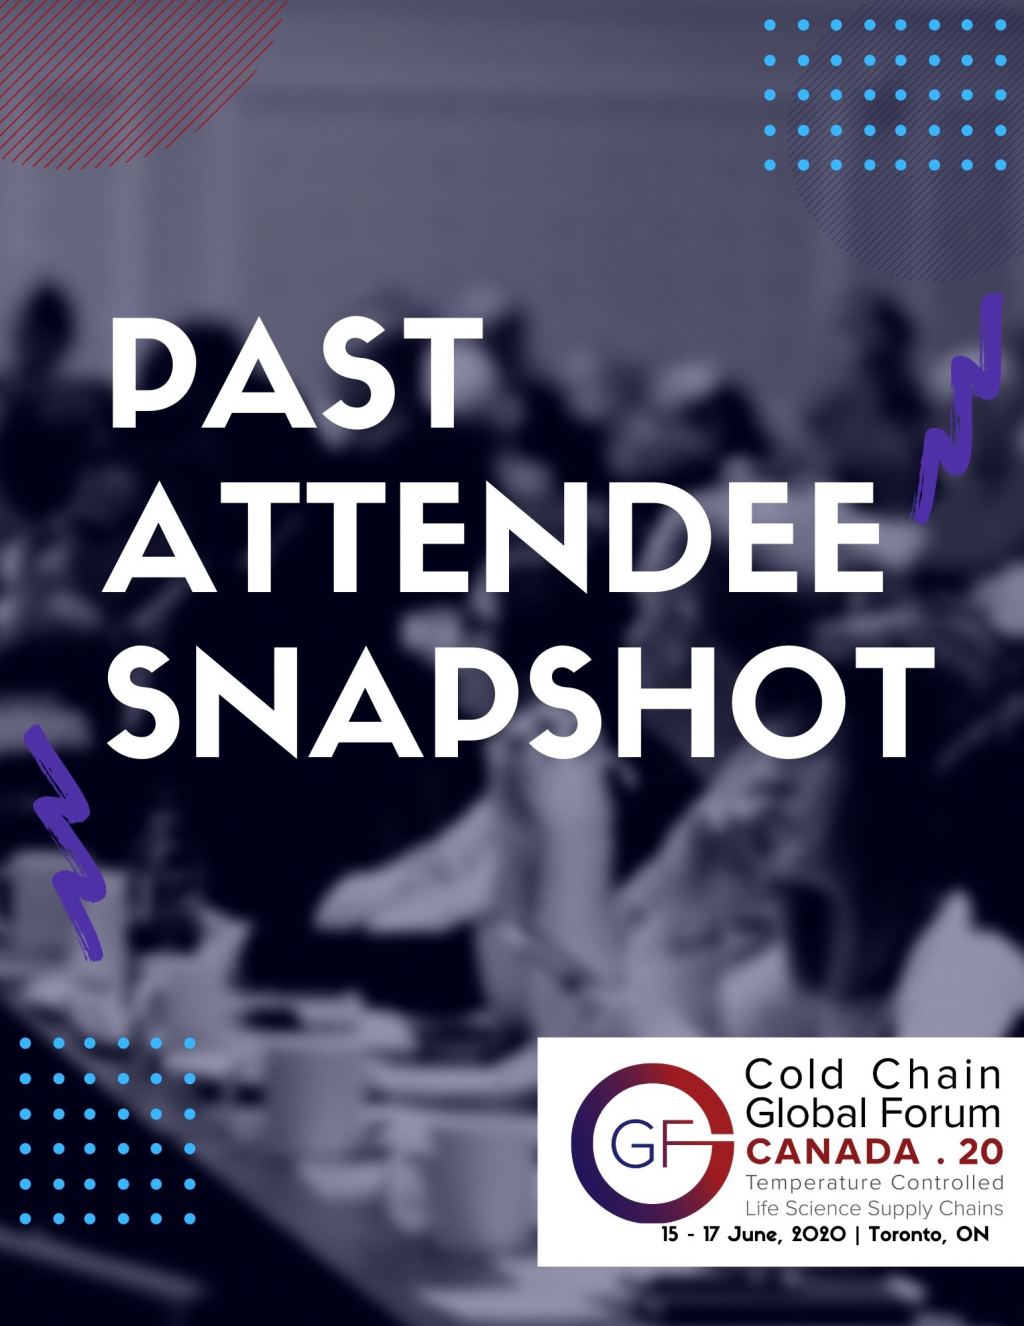 Past Attendee Snapshot: Find Out Who Attended in 2019!